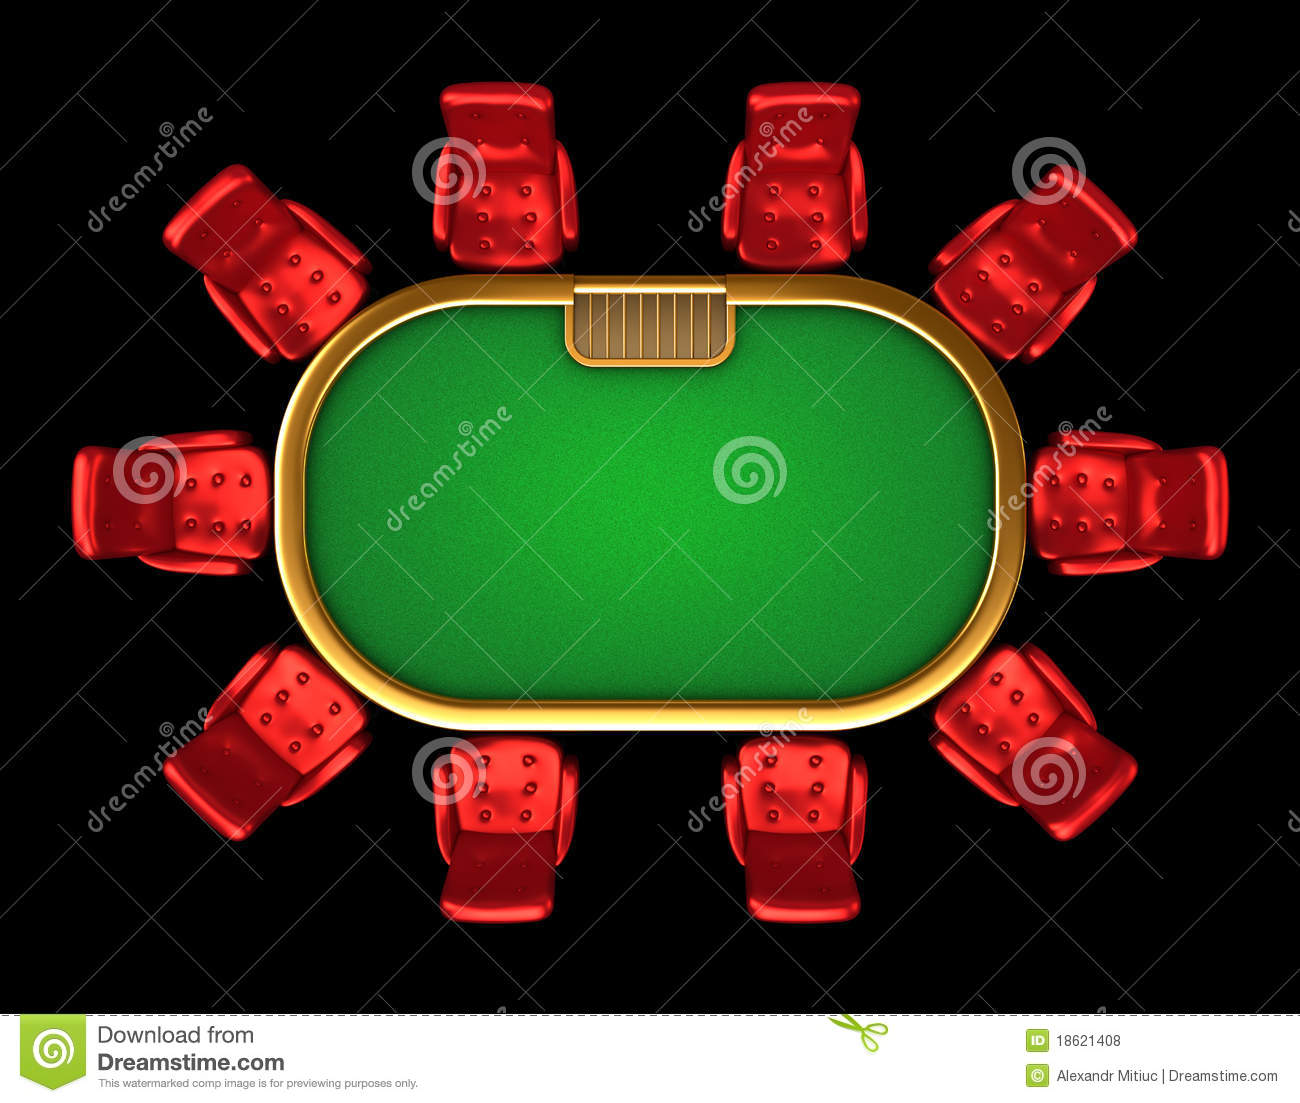 chairs for gaming xbox one chair poker table with top view stock illustration - of house, luck: 18621408